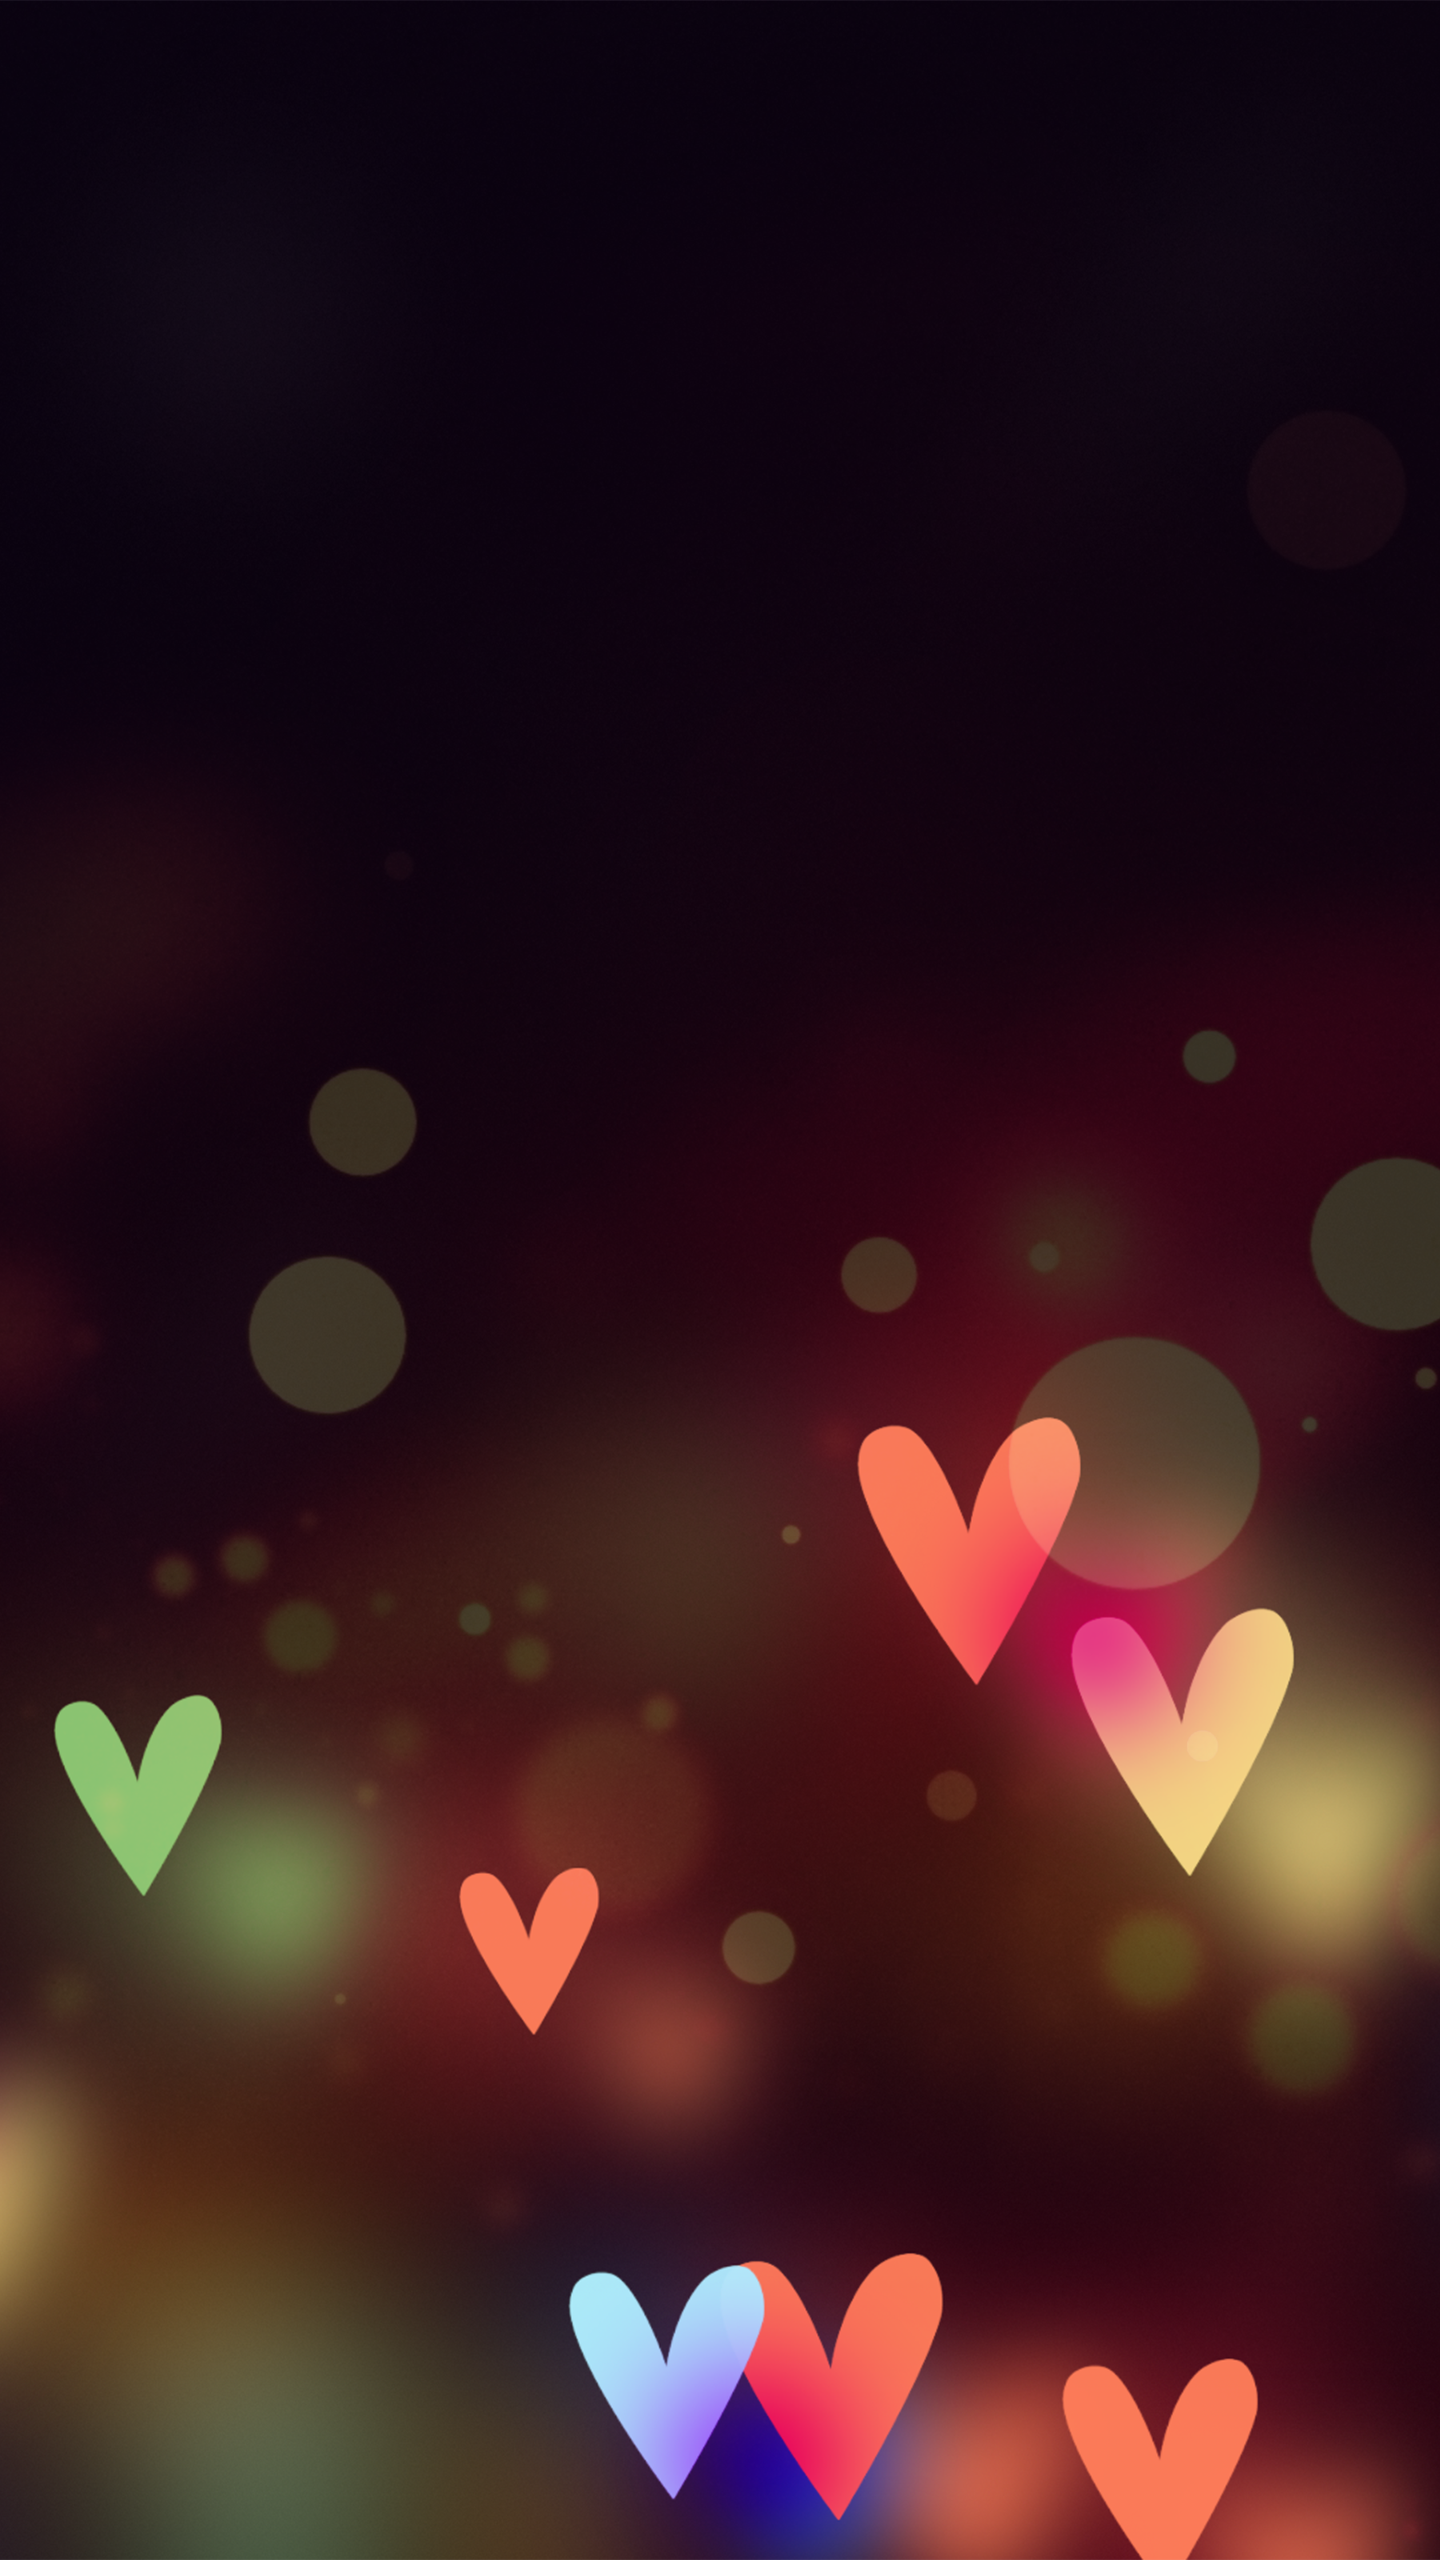 True Love Iphone Wallpaper : Love Wallpaper iPhone 6S Plus by lirking20 on DeviantArt